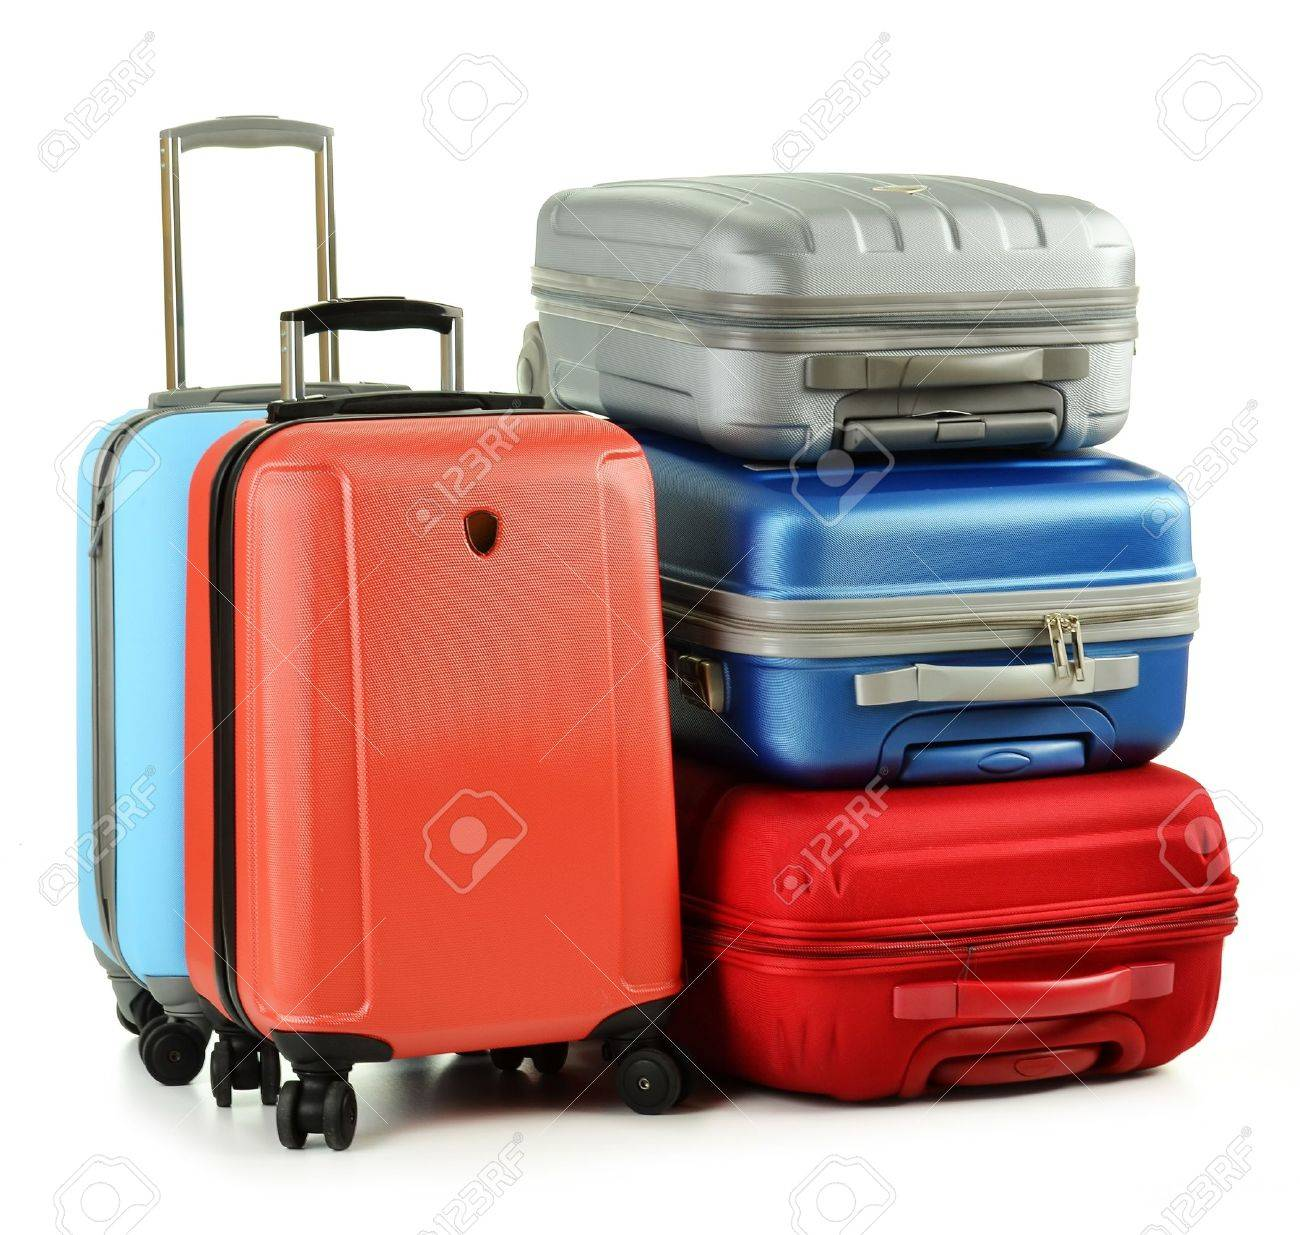 Luggage consisting of suitcases isolated on white Stock Photo - 10427562